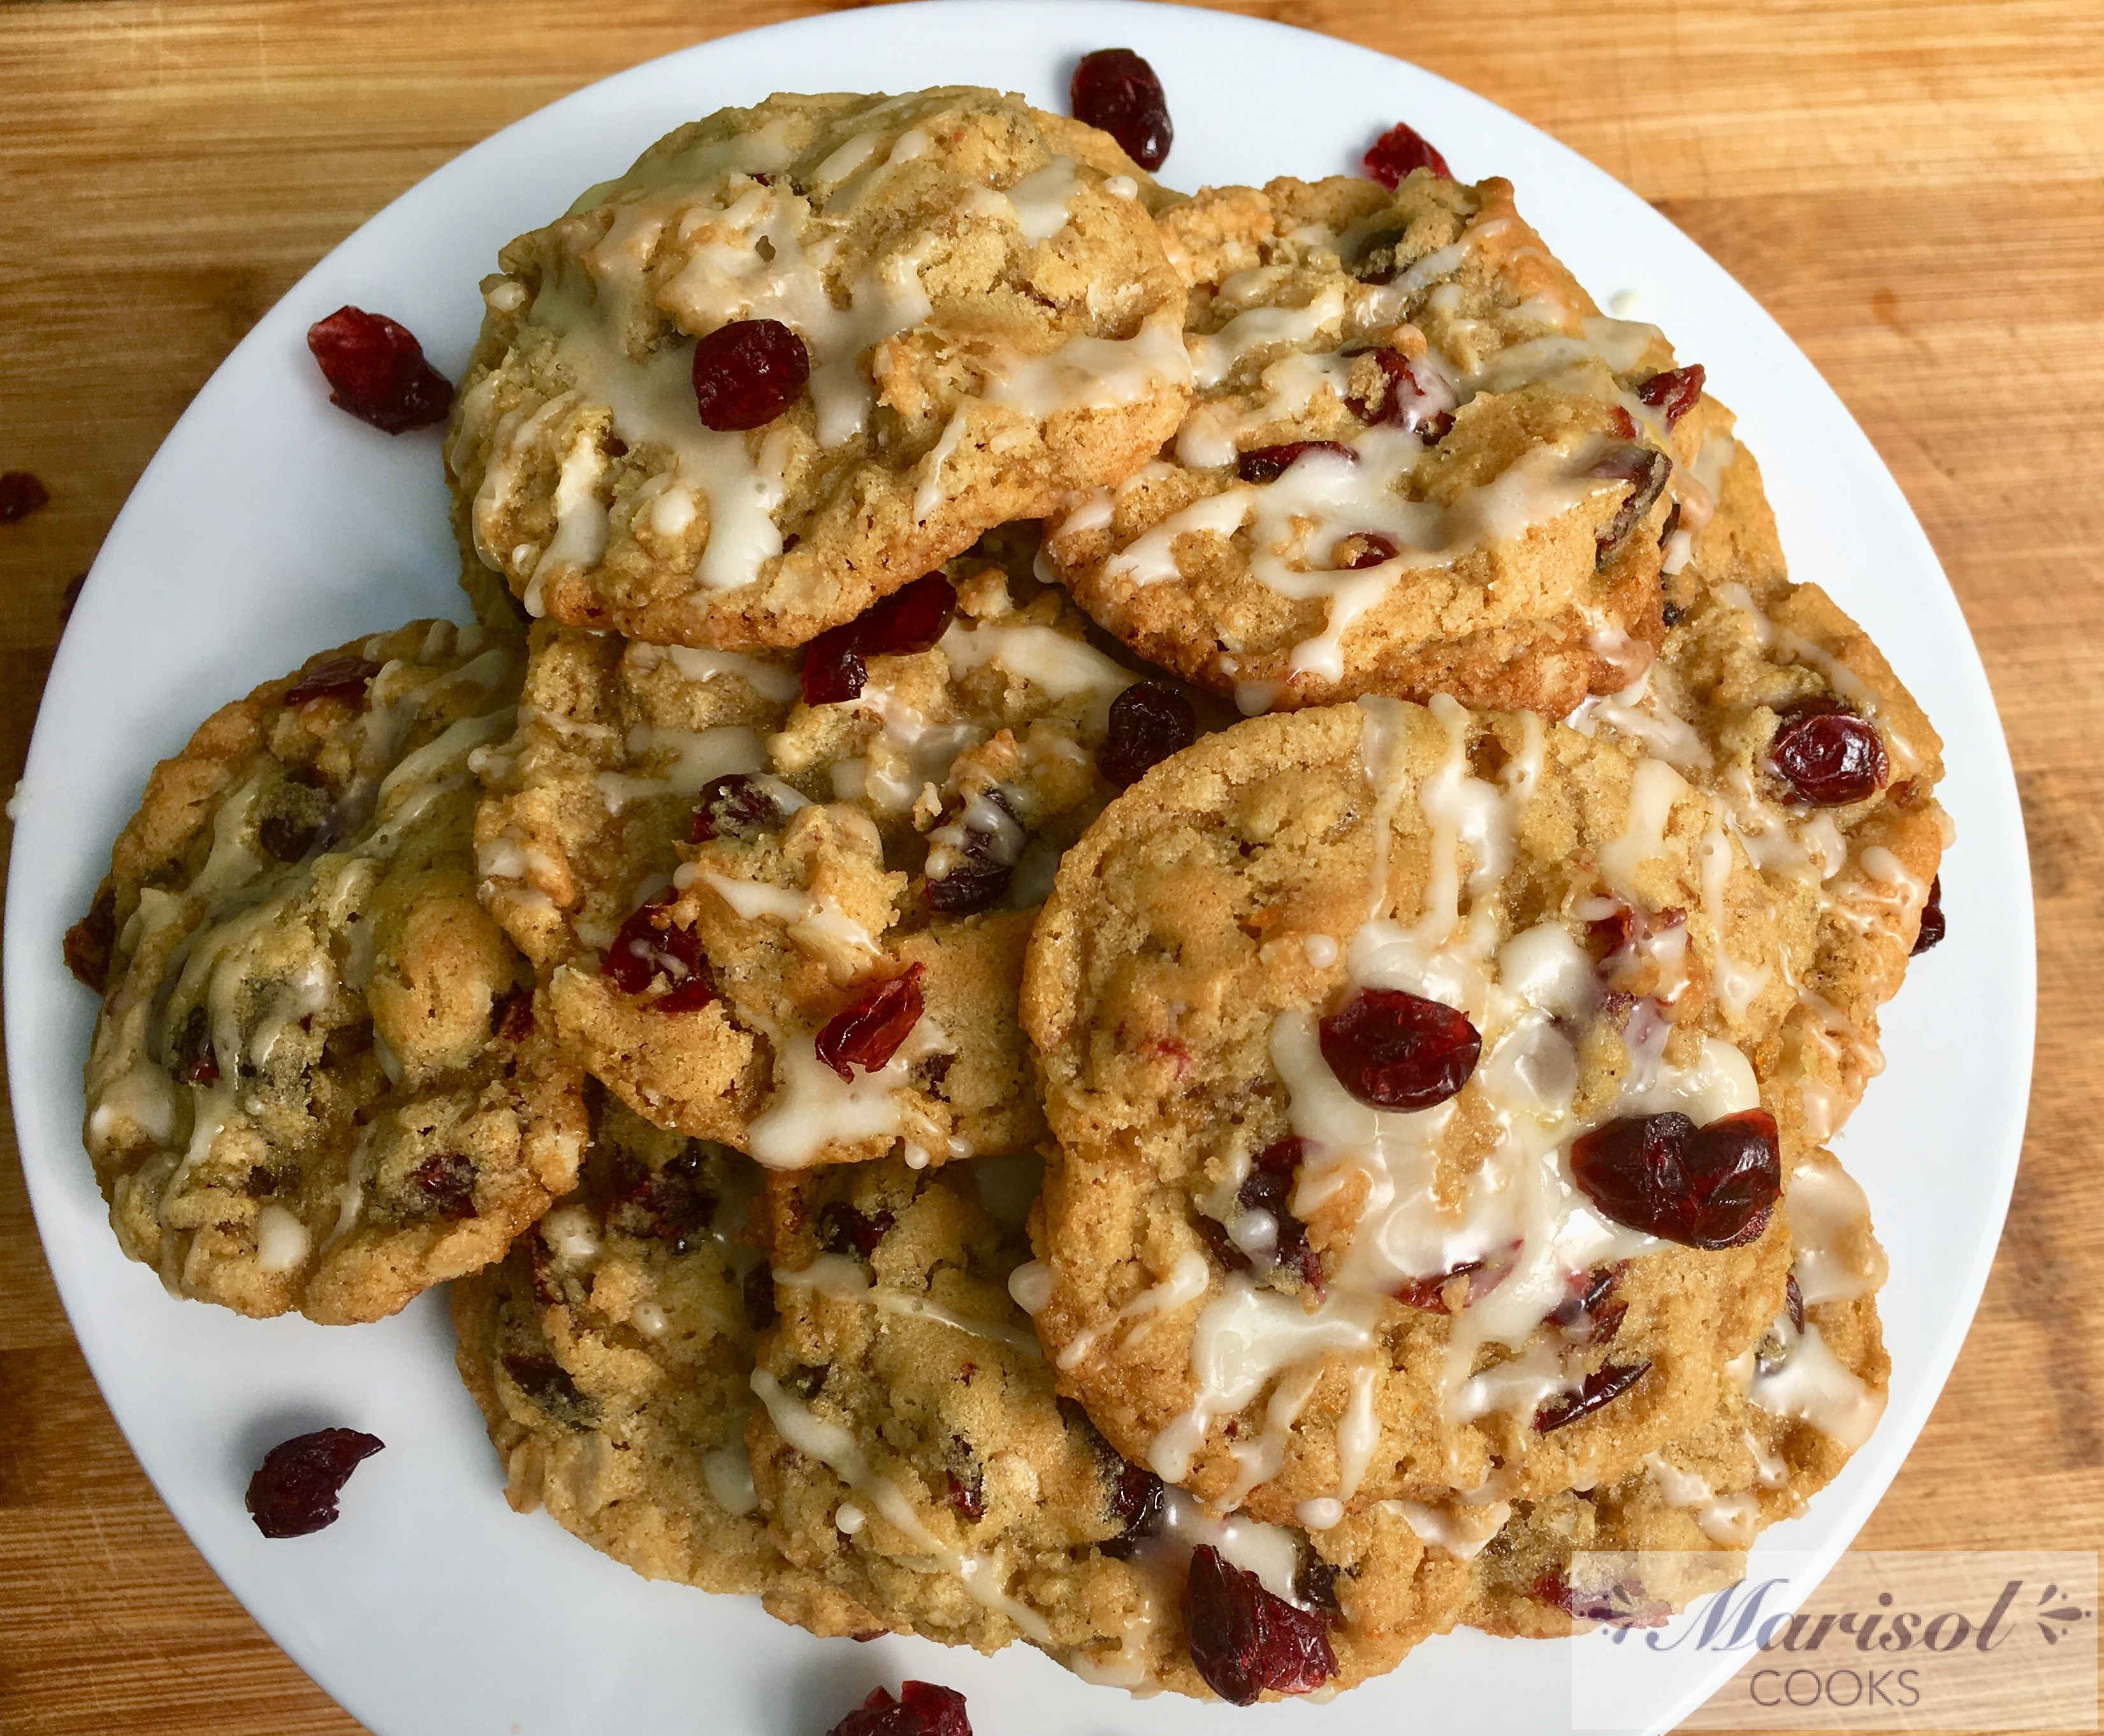 Orange and Cranberry Oatmeal Cookies